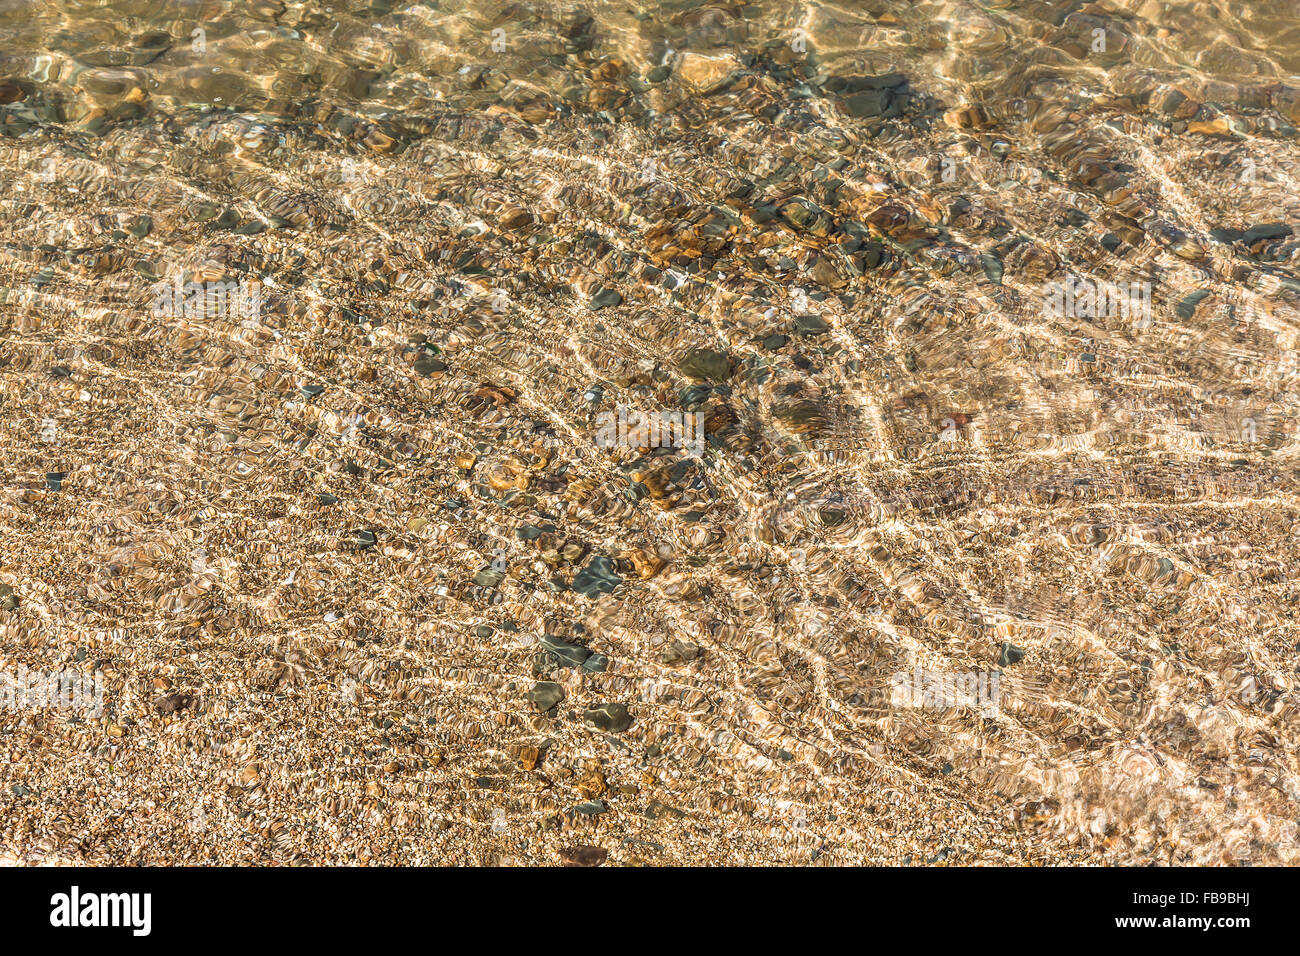 Transparent clear water and pebbles with sunlight reflection - Stock Image